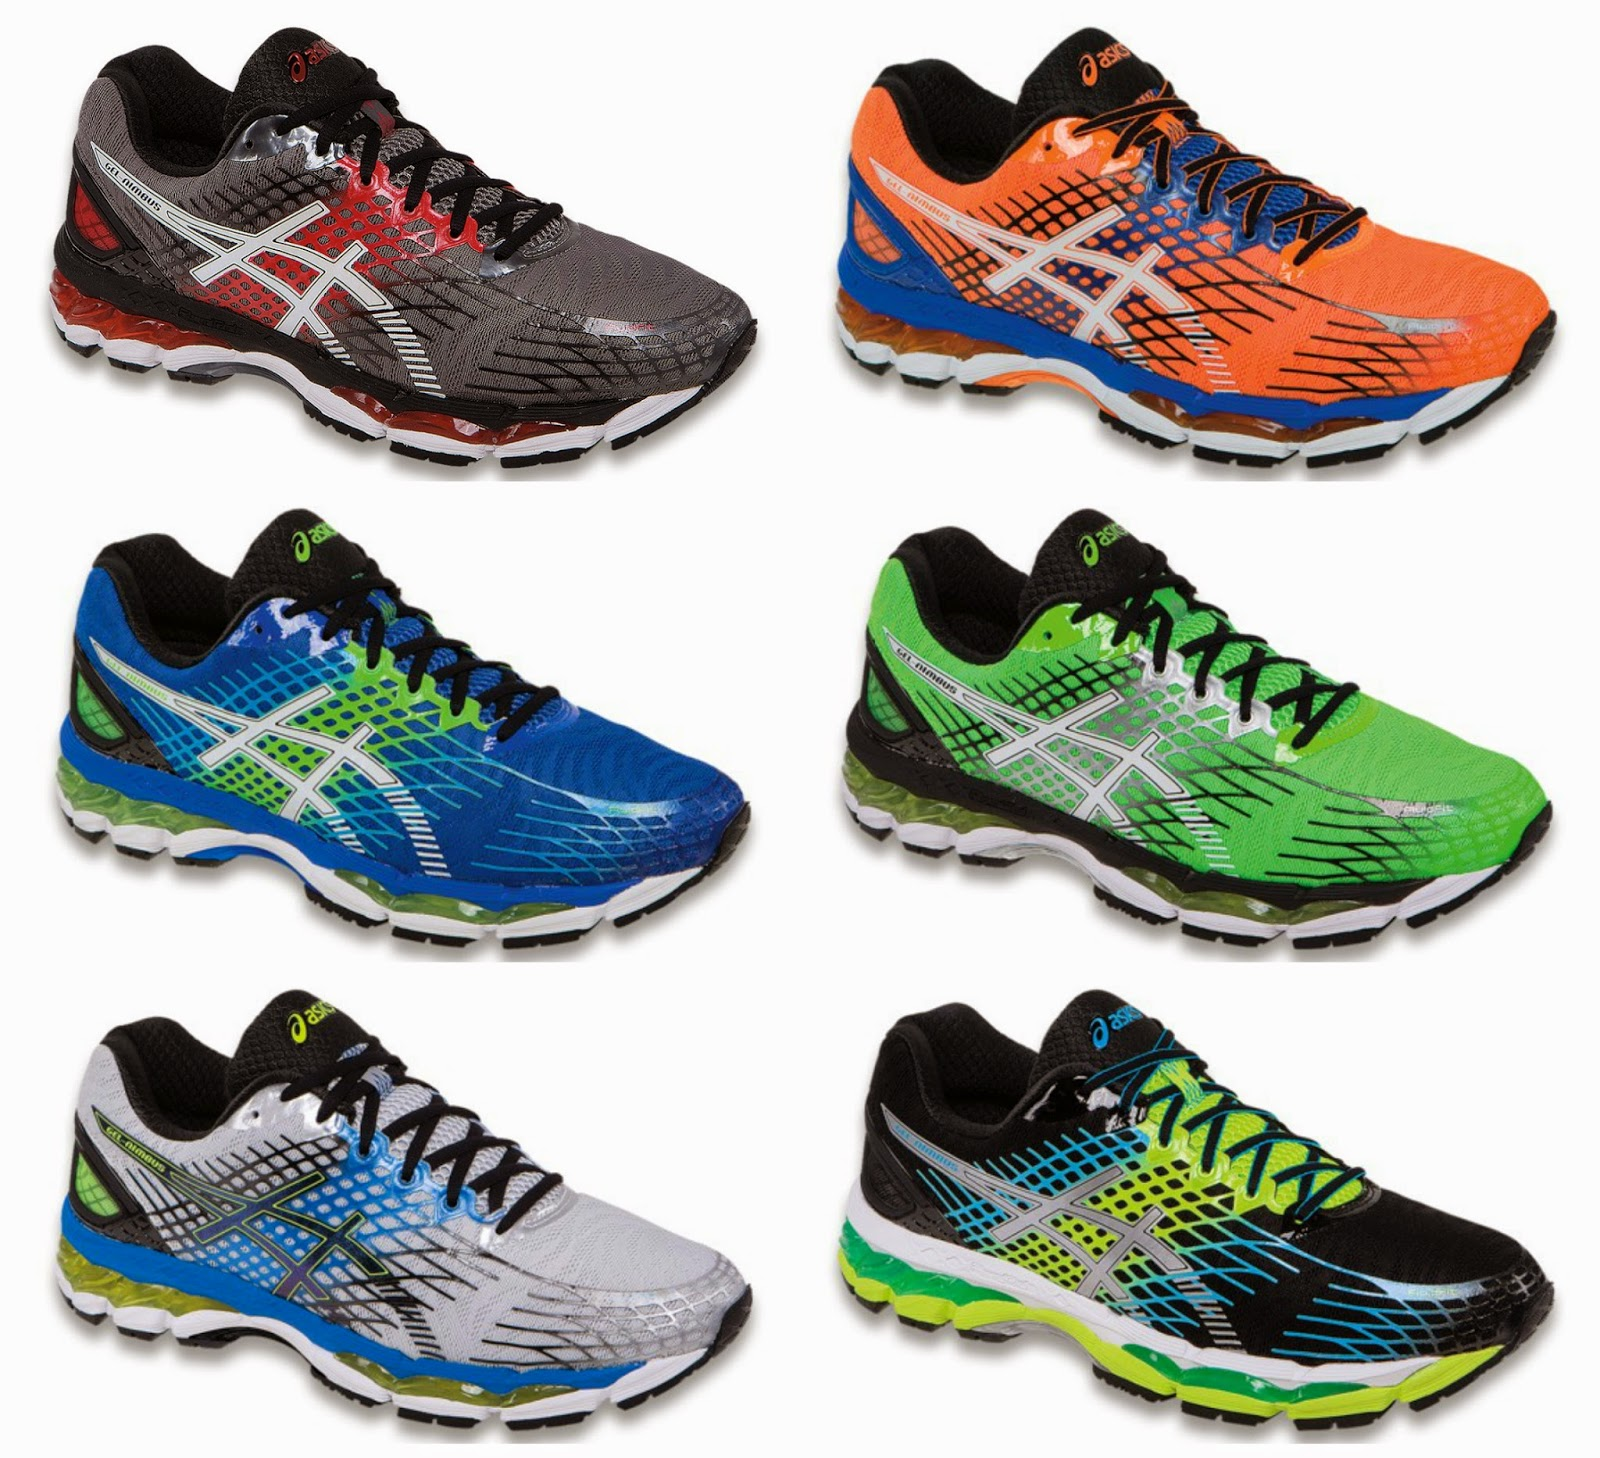 asics gel nimbus 17 review and win asics gear for a year. Black Bedroom Furniture Sets. Home Design Ideas